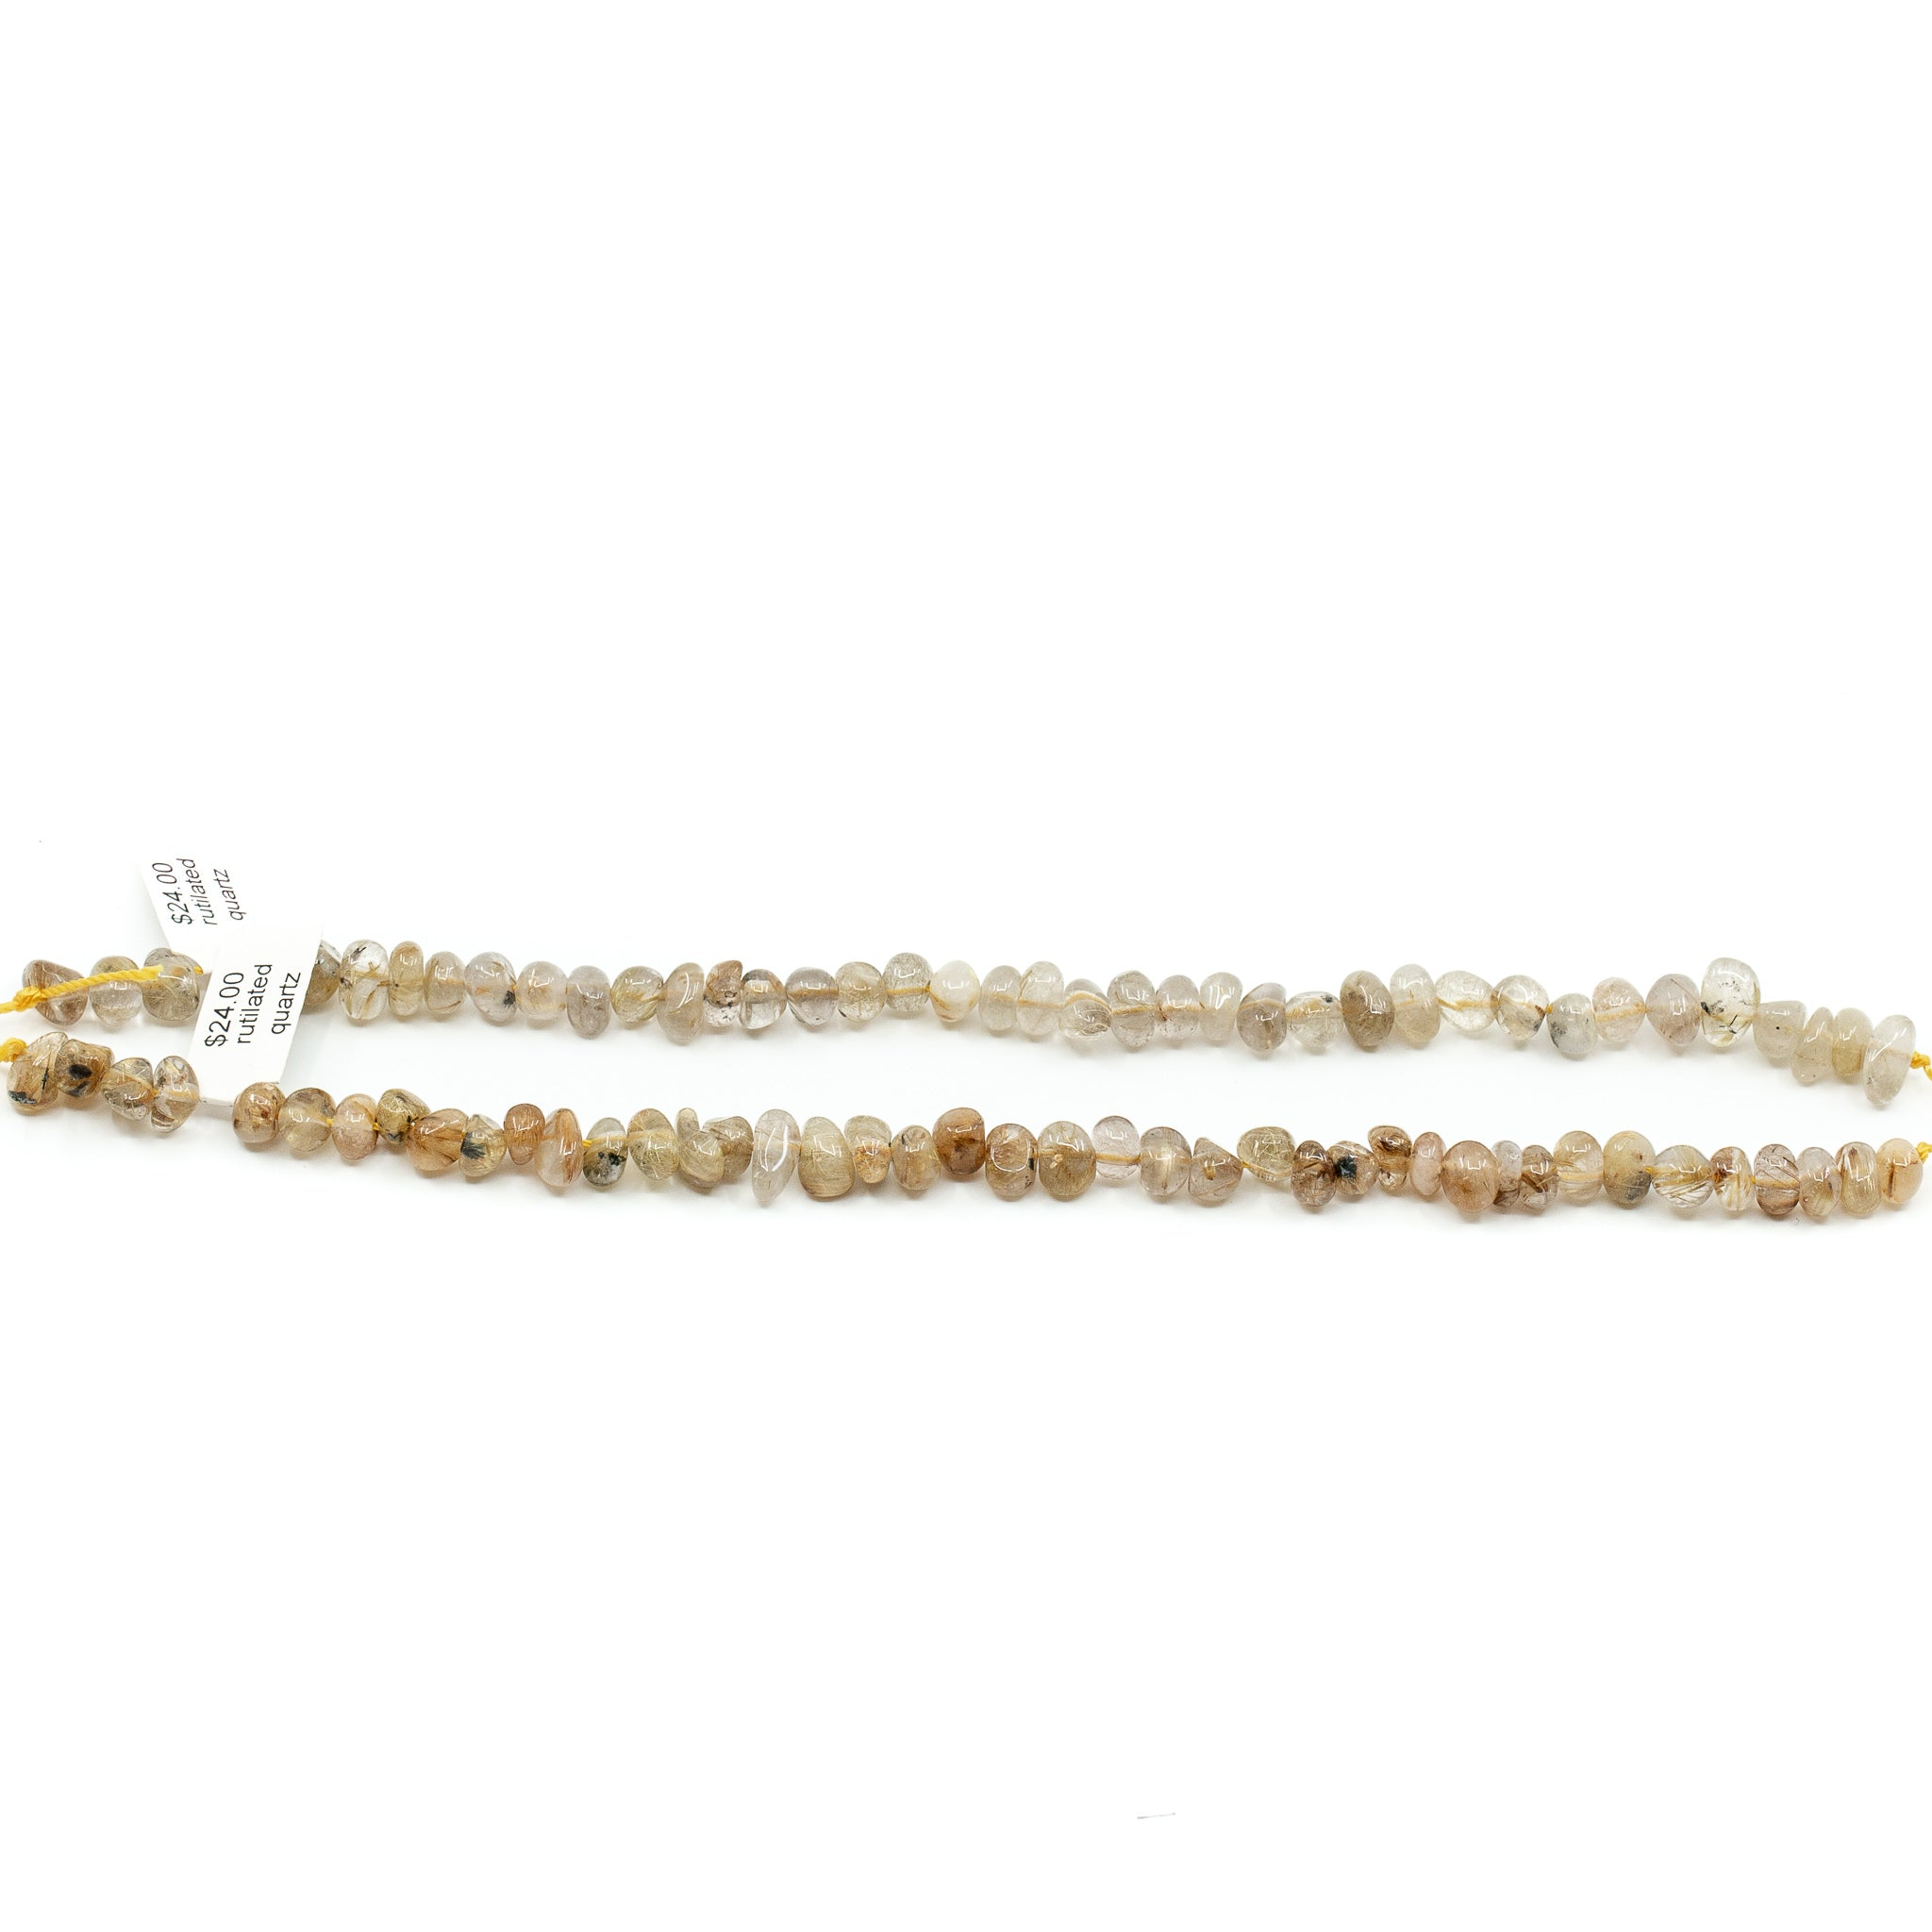 Gold Rutilated Quartz Strand - 11x5mm Tumbled Chubby Chip